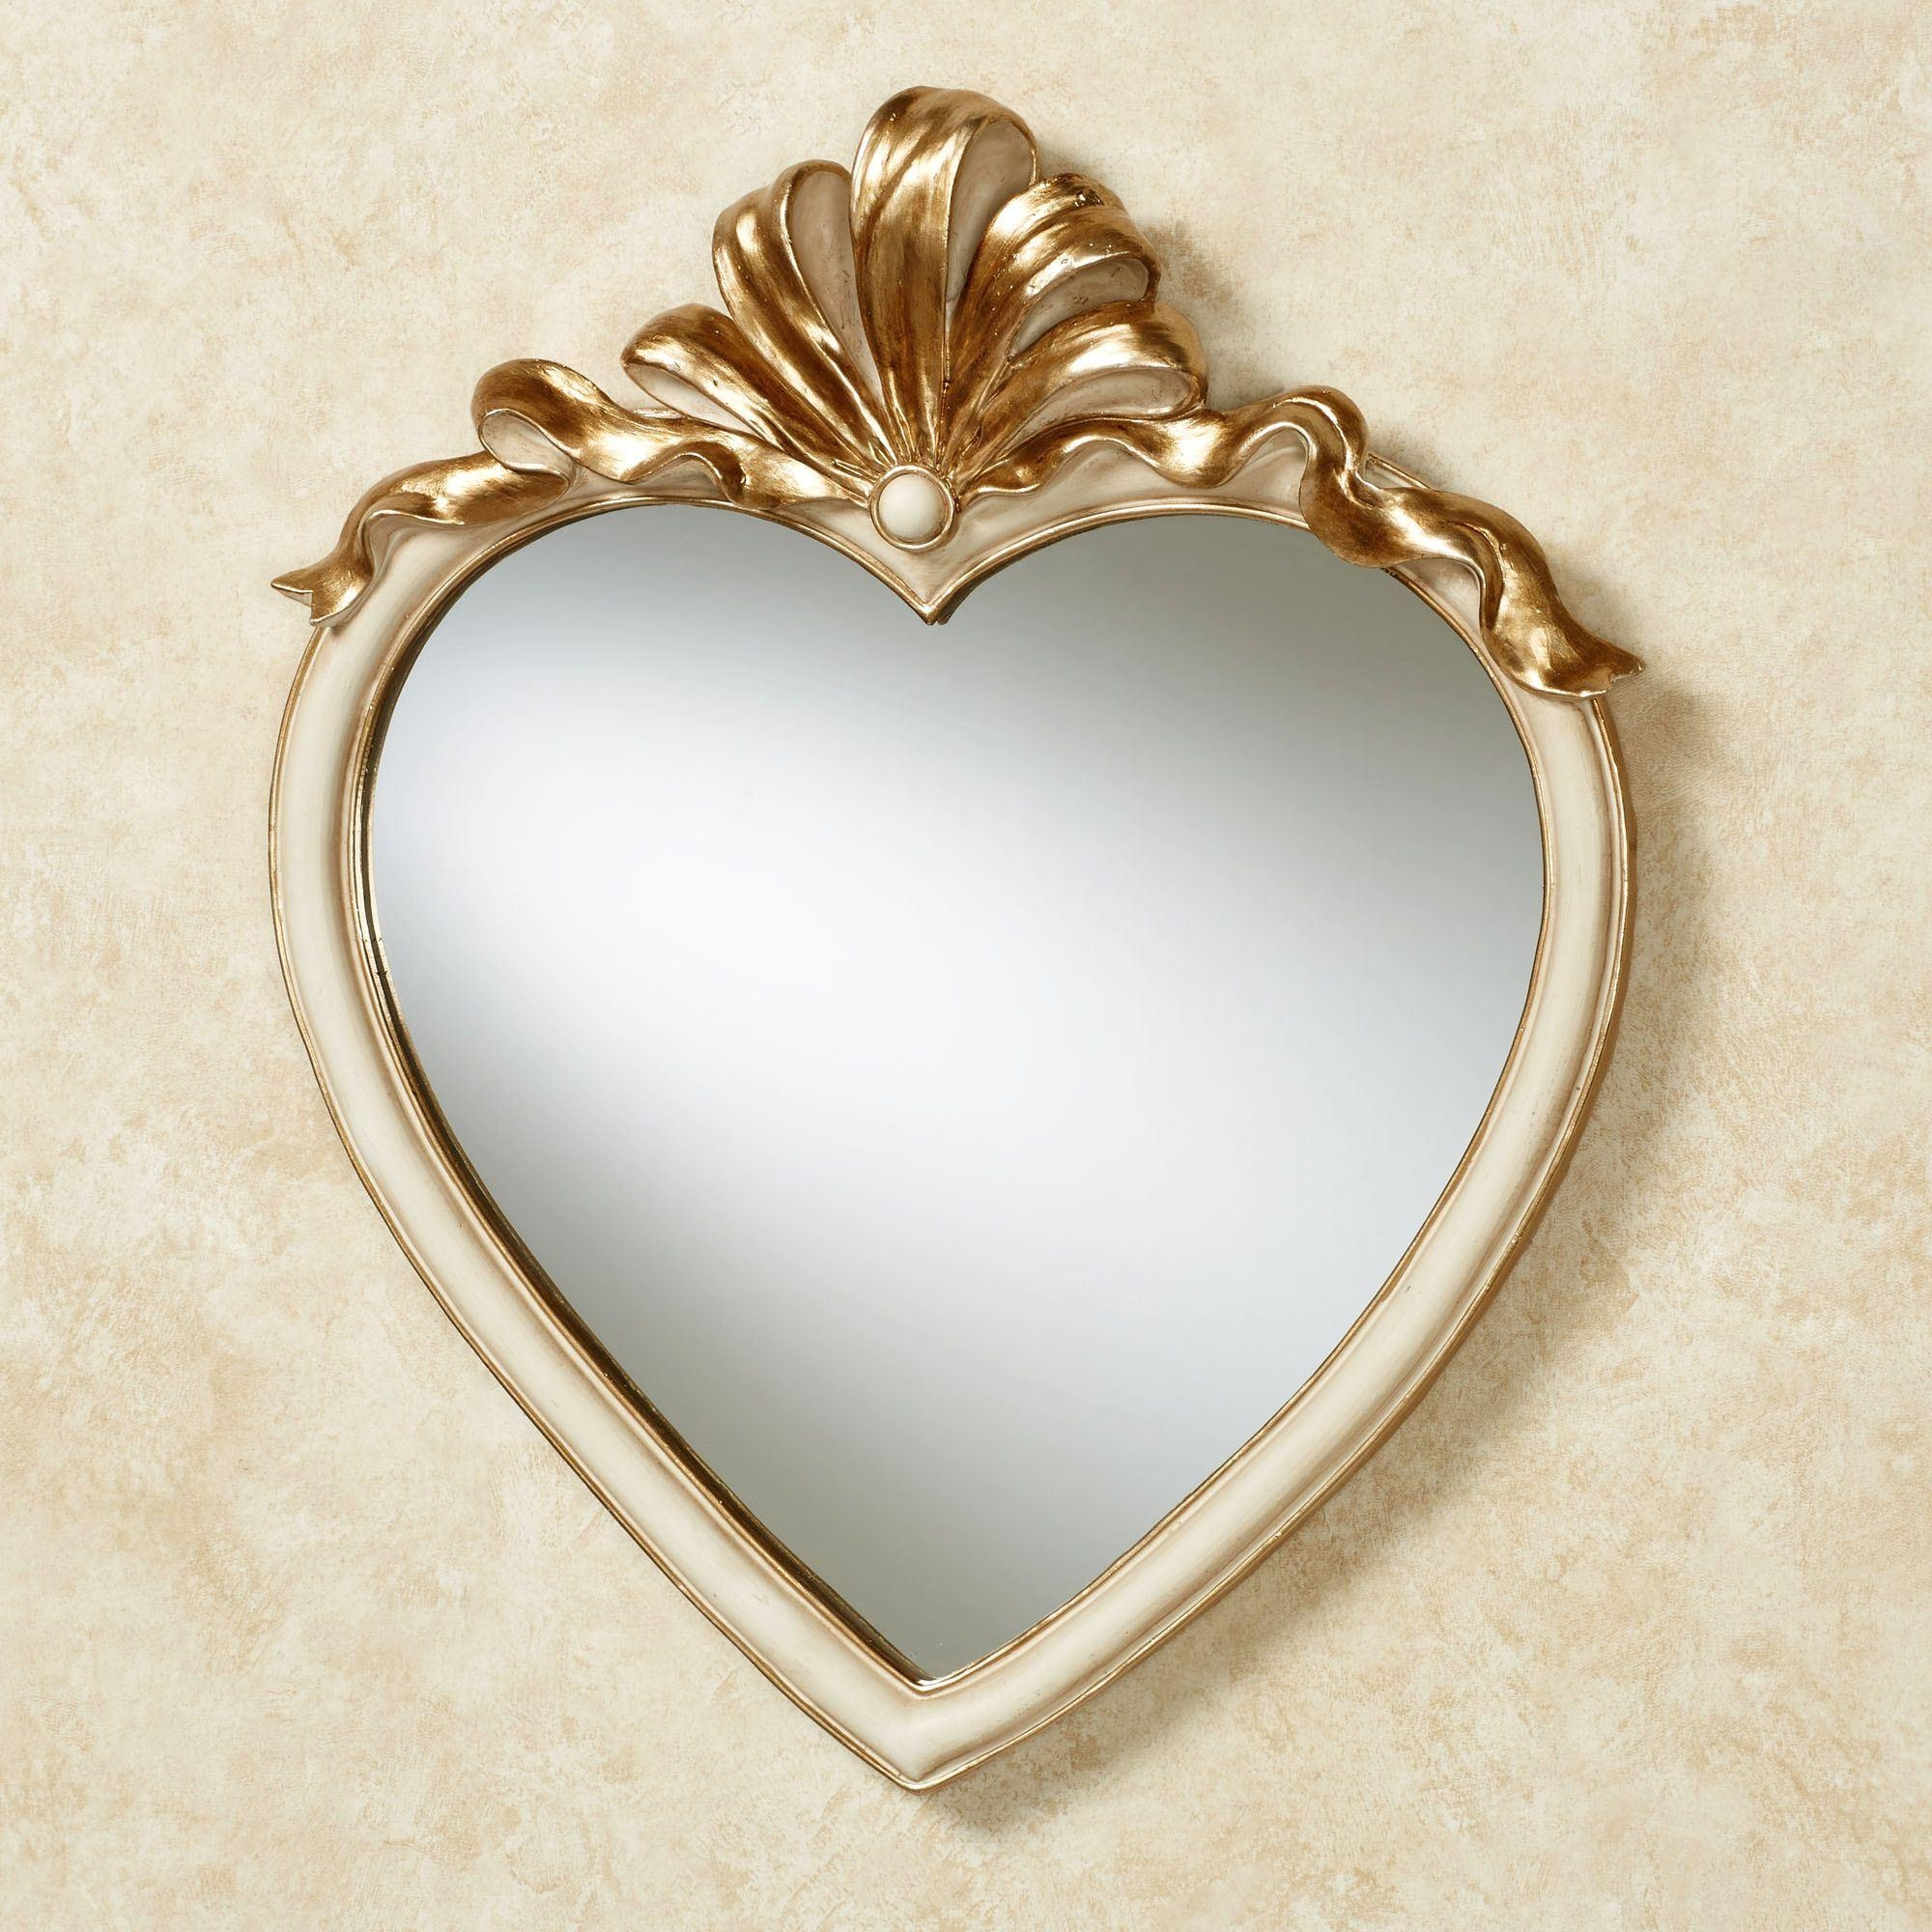 Leandra Heart Shaped Wall Mirror Intended For Heart Shaped Mirrors For Walls (View 9 of 20)